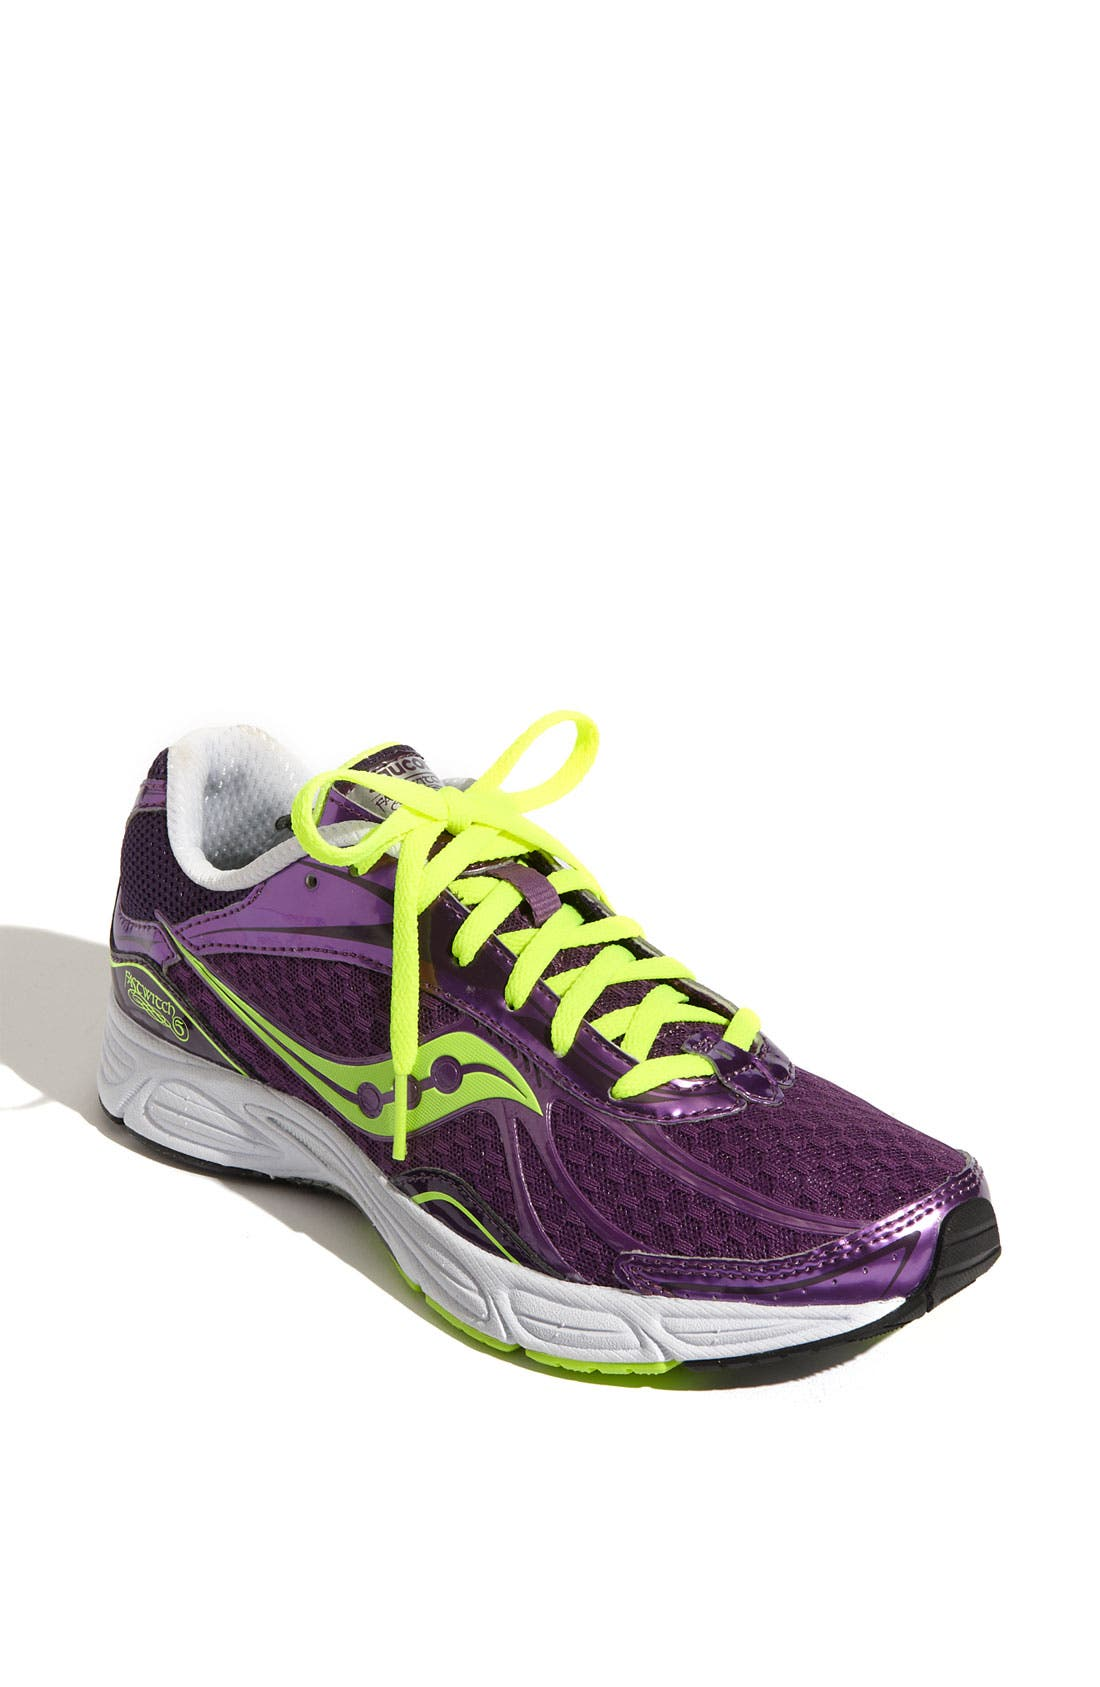 Alternate Image 1 Selected - Saucony 'Grid Fastwitch 5' Running Shoe (Women)